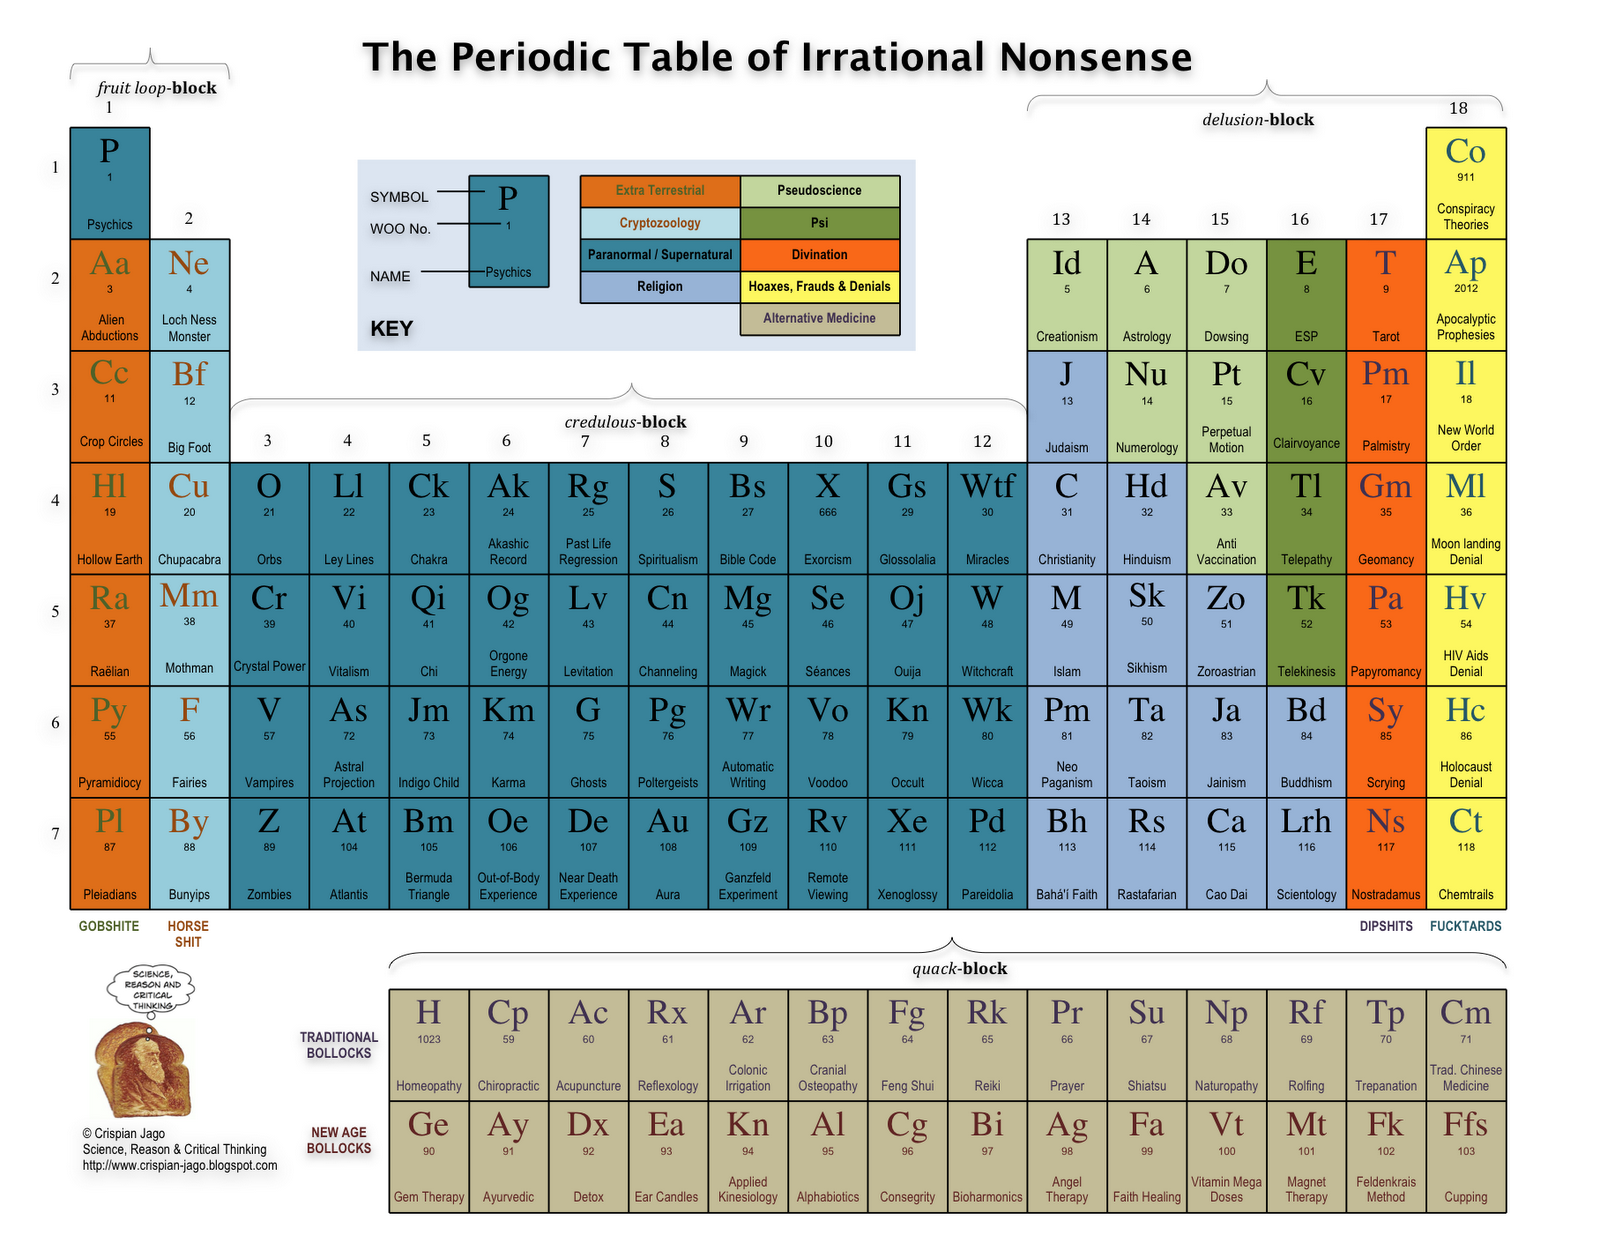 The Periodic Table of Irrational Nonsense